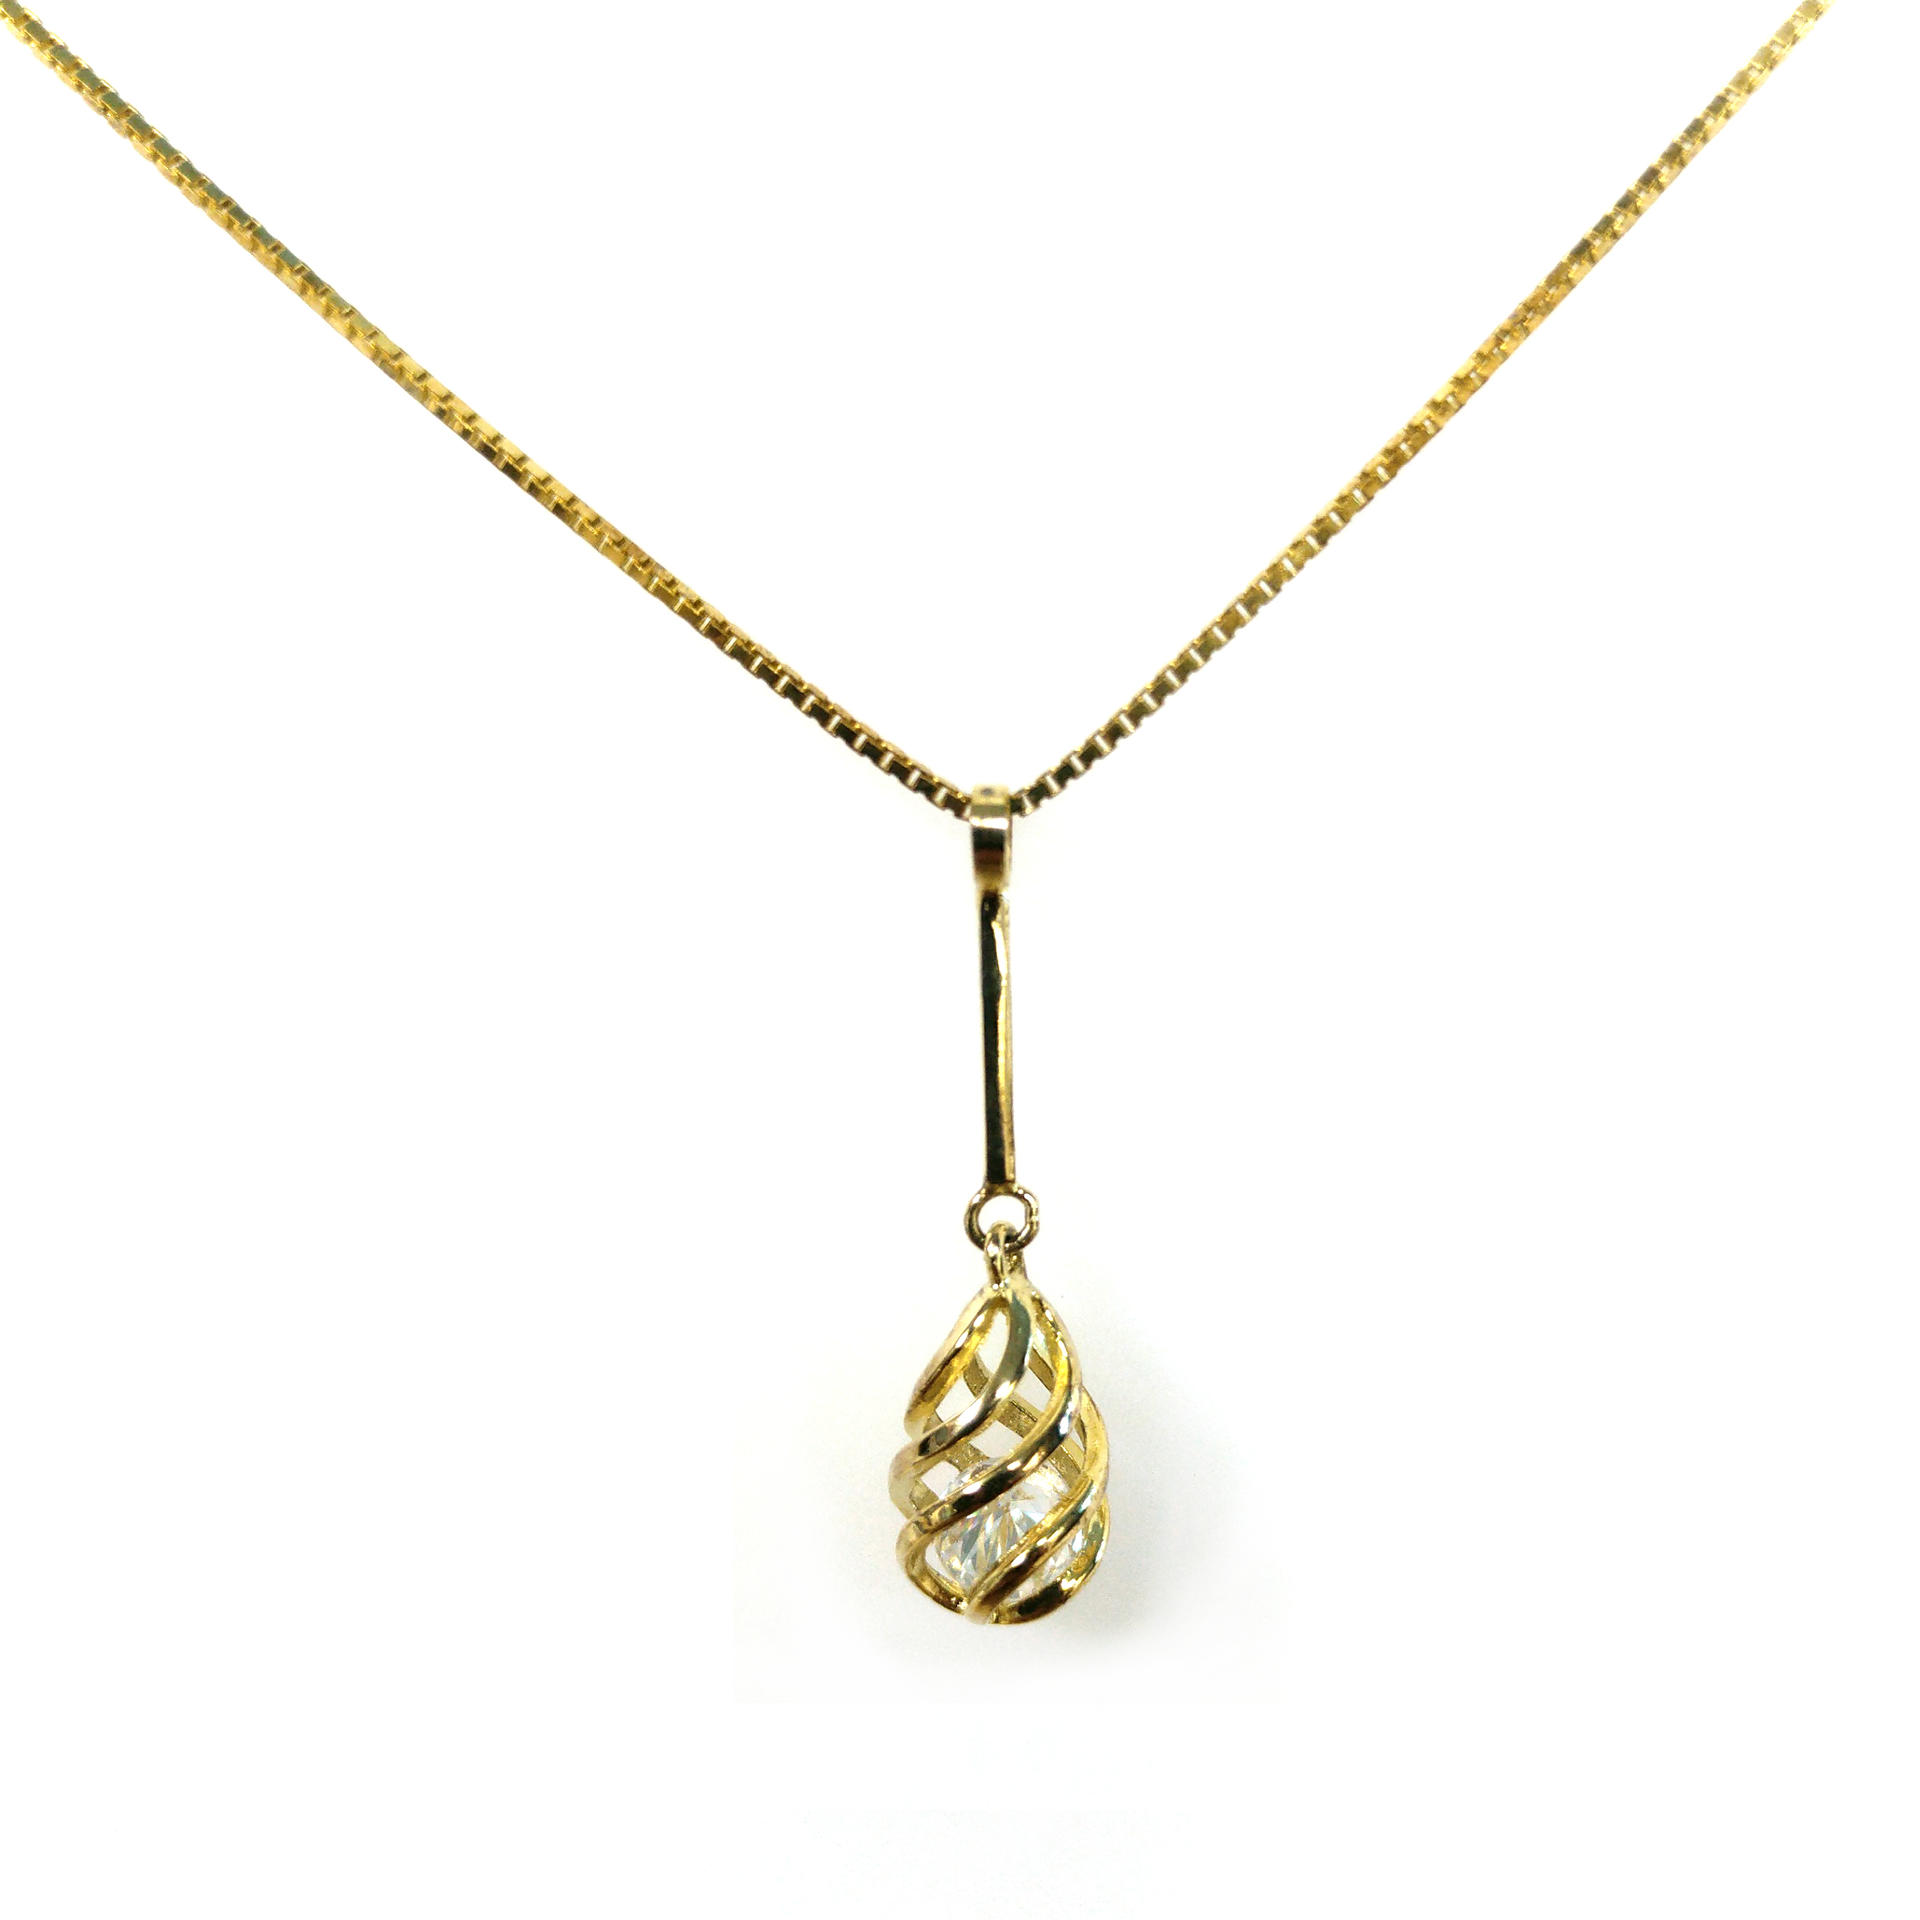 Delicate Gold Hollow Design Tracery Cz Cage Pendant Necklace For Women